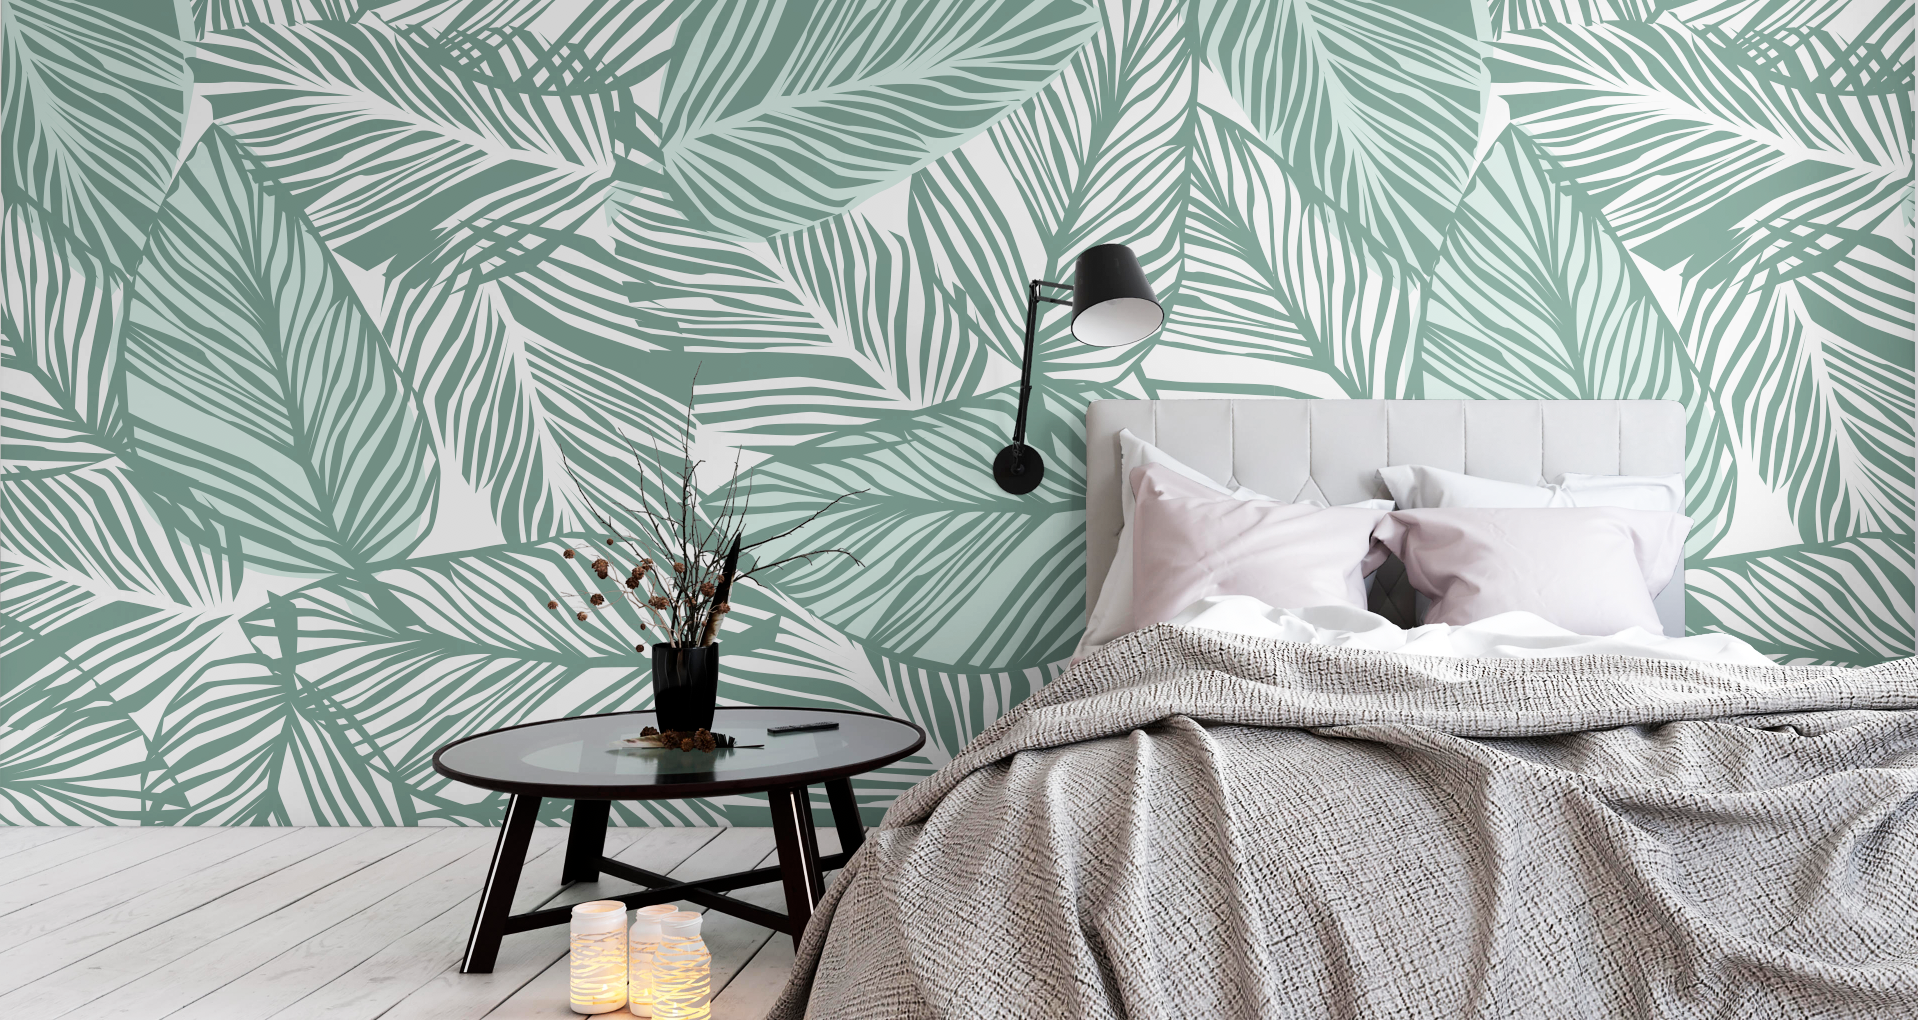 Wallpaper & Murals By Pickawall   The Removable Wallpaper Experts